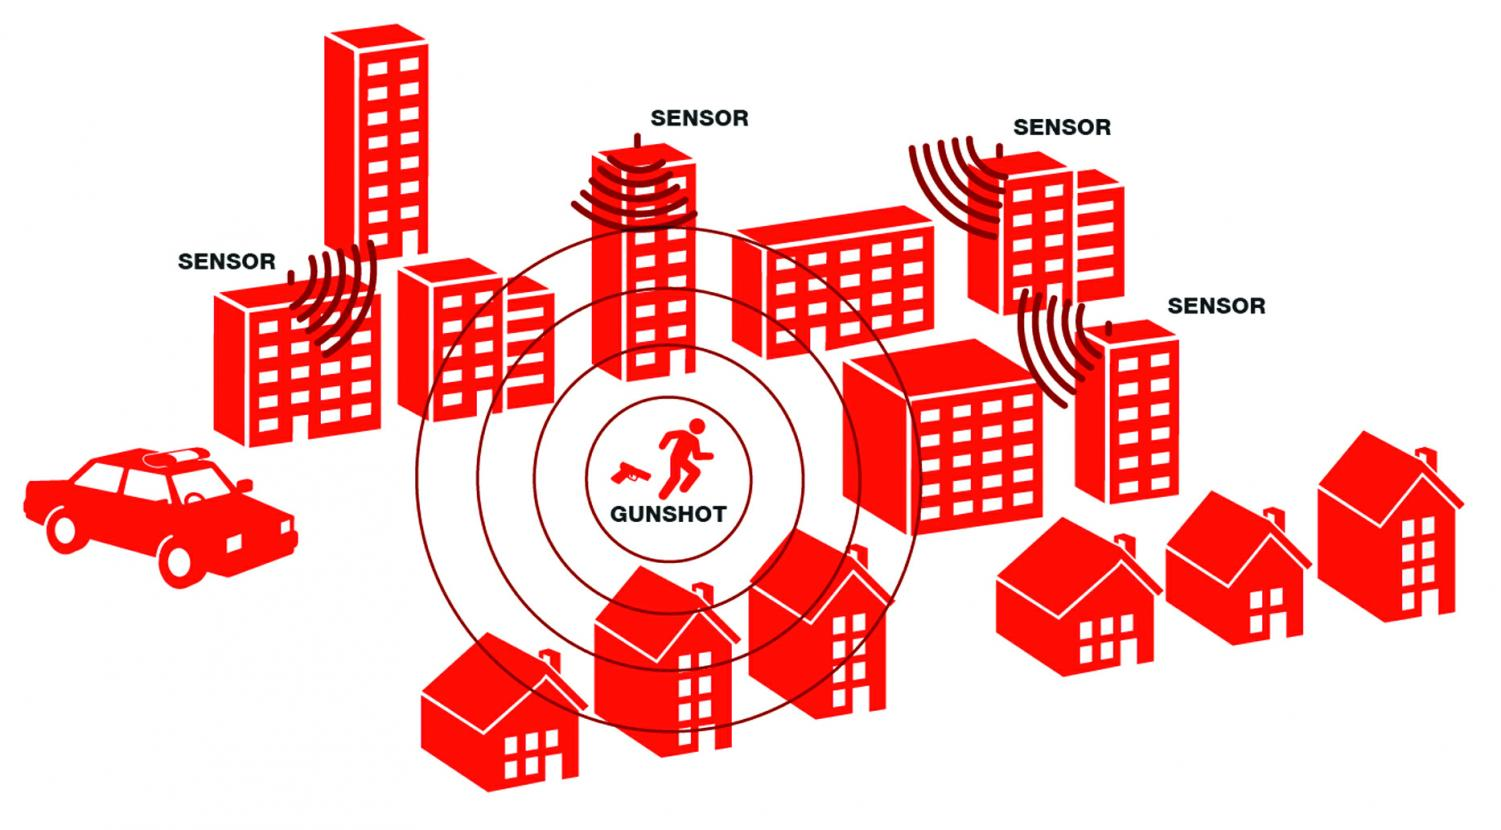 ShotSpotter sensors and gunshot diagram shows situational response after gunfire is detected on the technology's acoustic microphones.